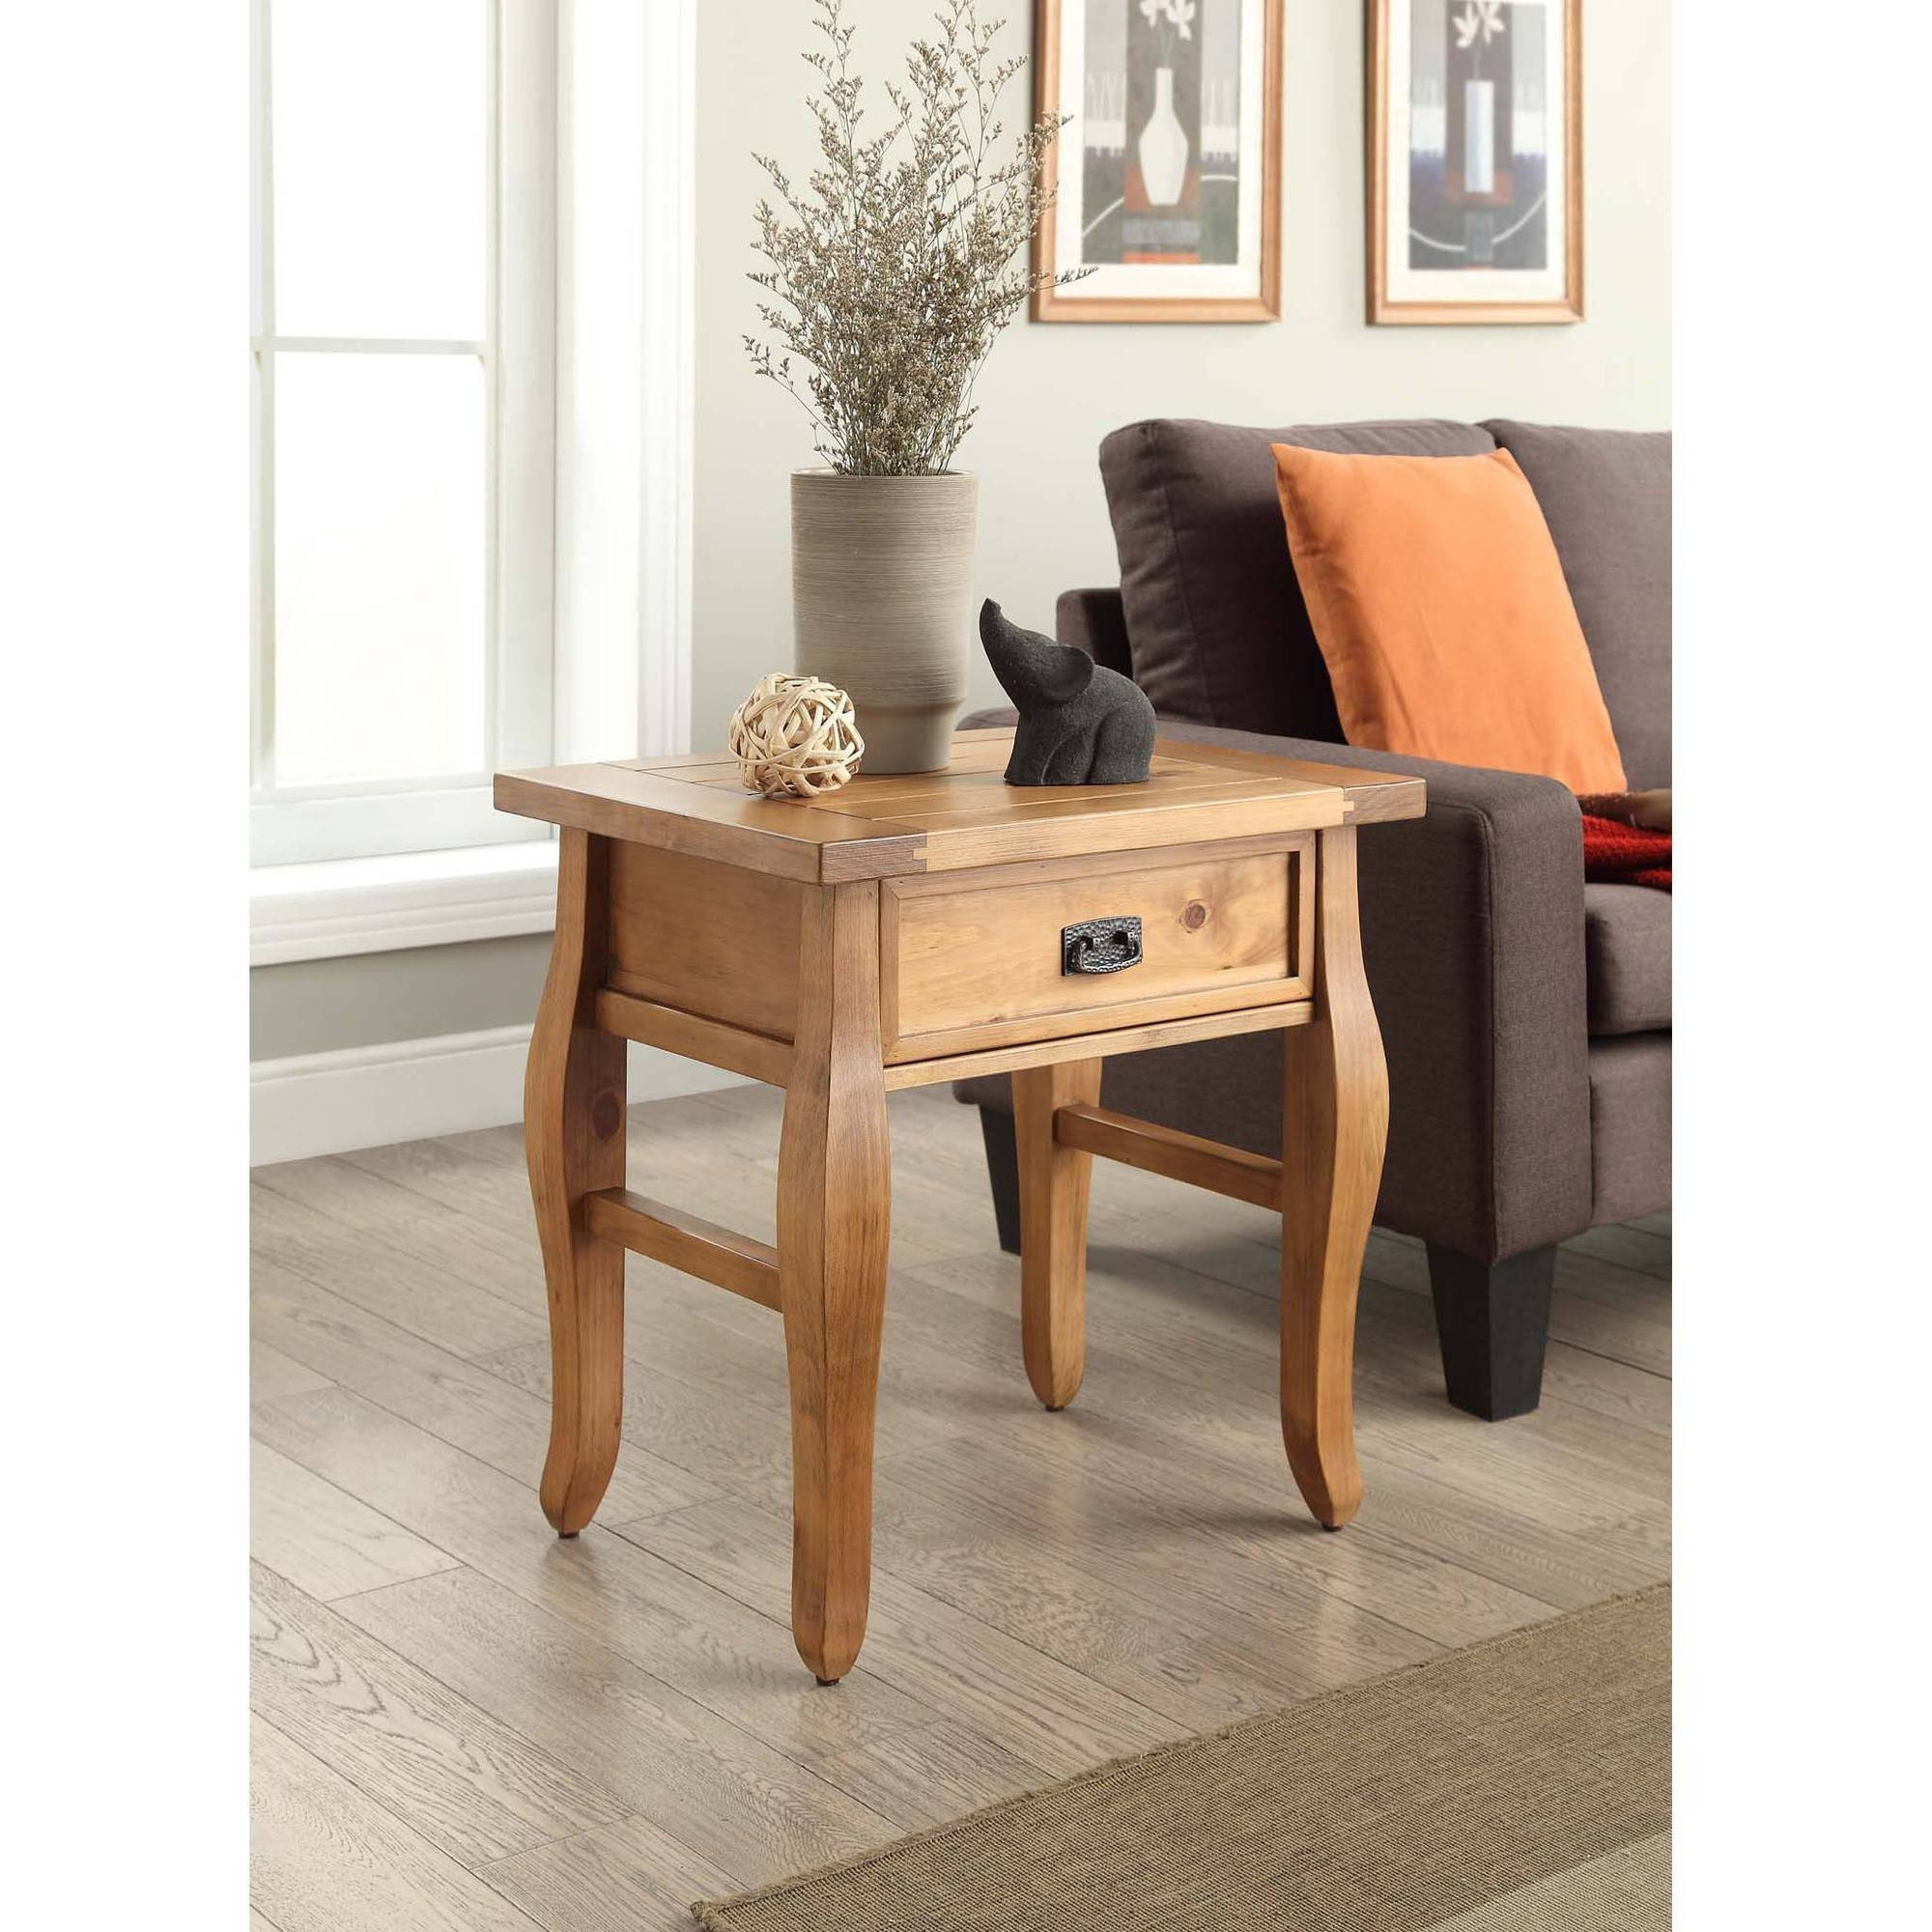 Linon Santa Fe End Table, Antique Finish, 24 Inches Tall – Walmart For Most Recently Released Santa Fe Coffee Tables (View 3 of 20)